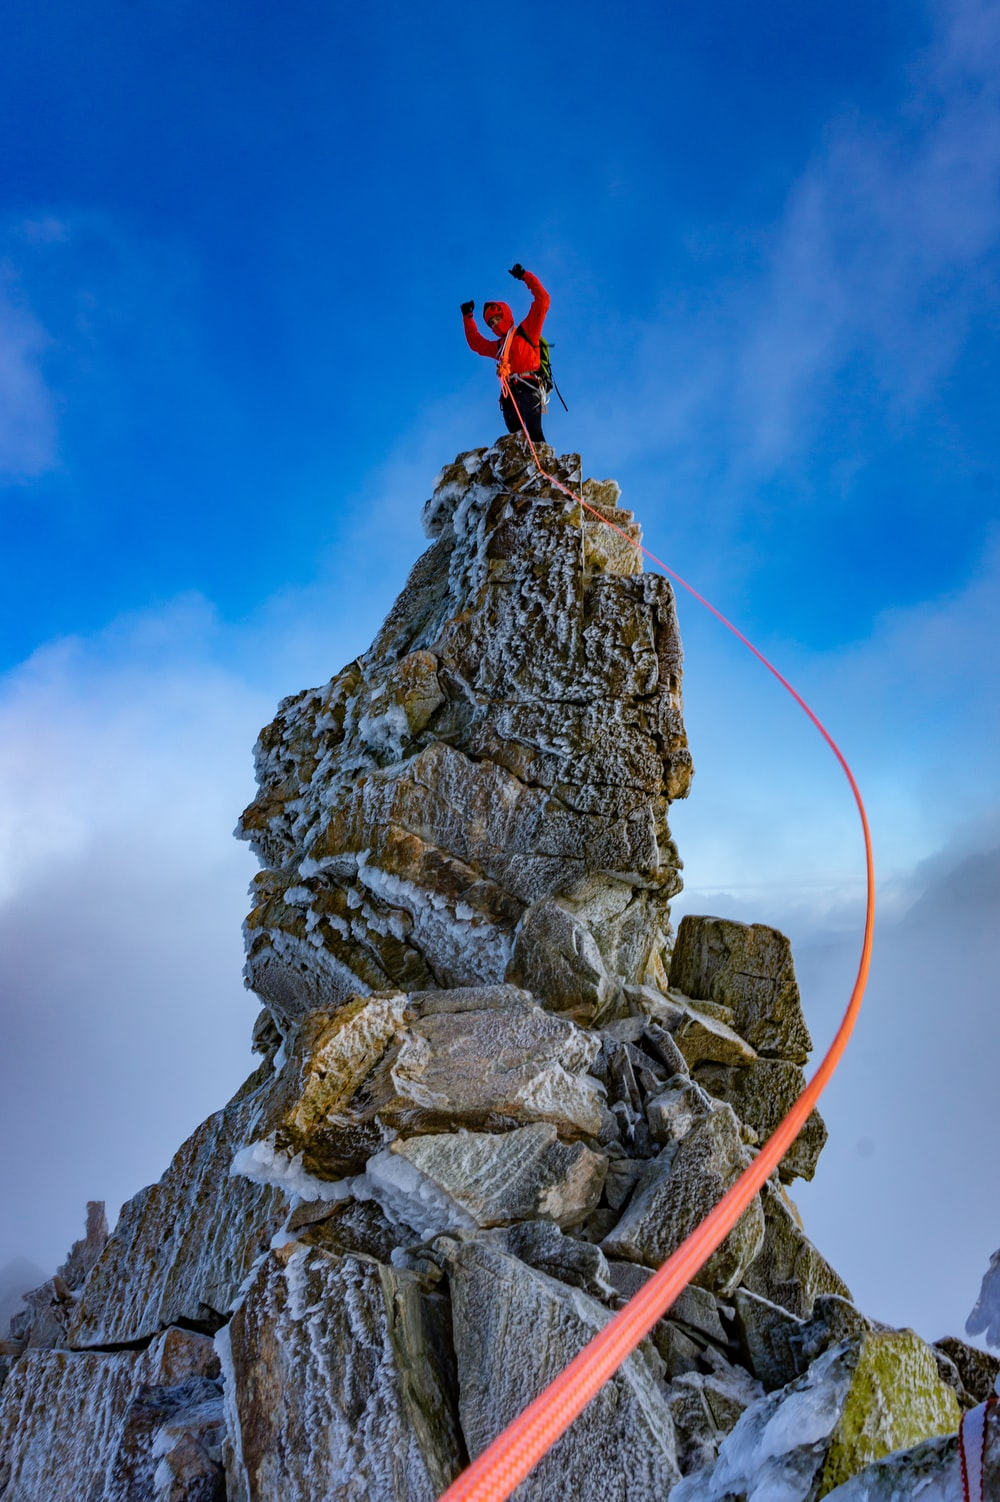 person in red jacket and black pants jumping on rocky mountain under blue sky during daytime